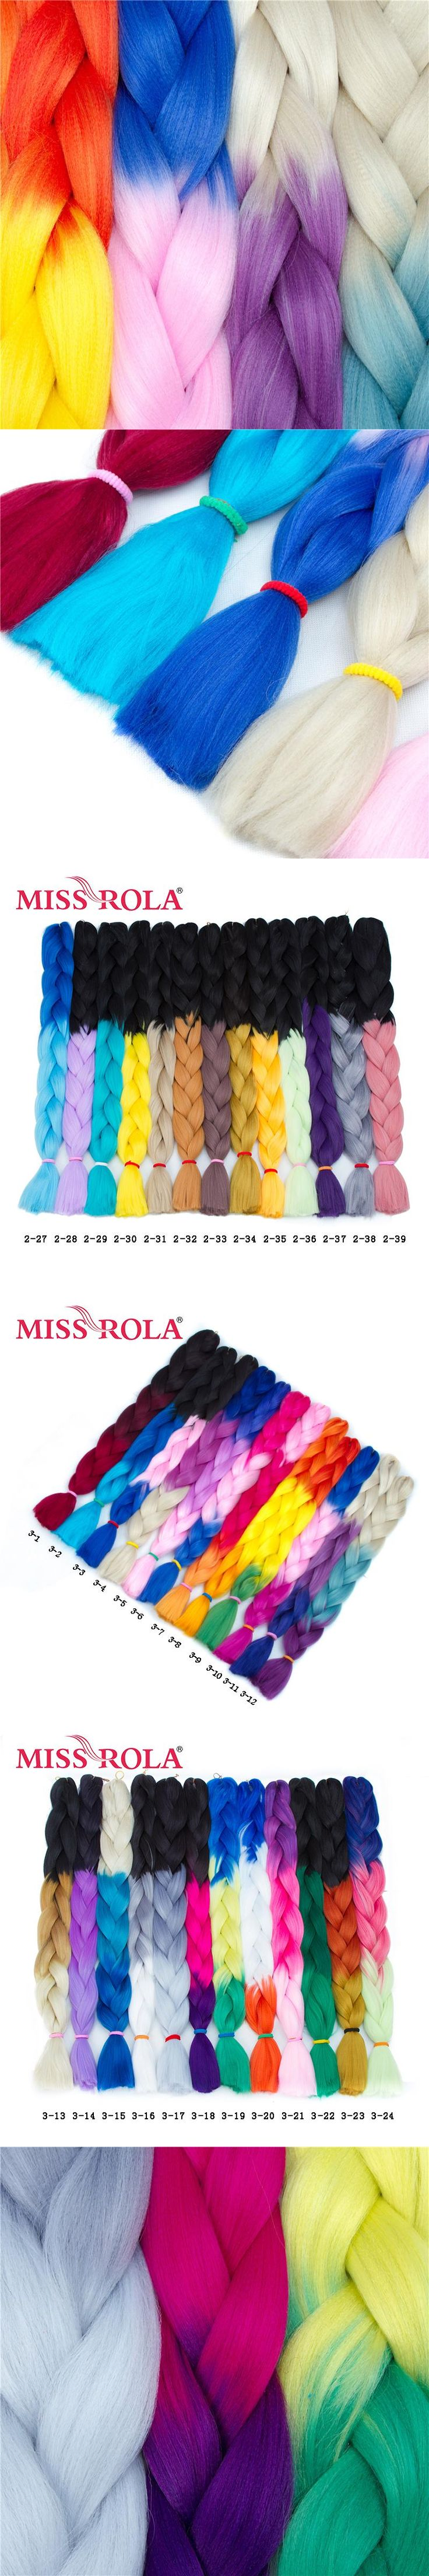 Miss Rola 1pc Ombre Jumbo Braiding Hair Extensions 165g Synthetic High Temprature Fiber Long Crochet Braids Hair 32inch